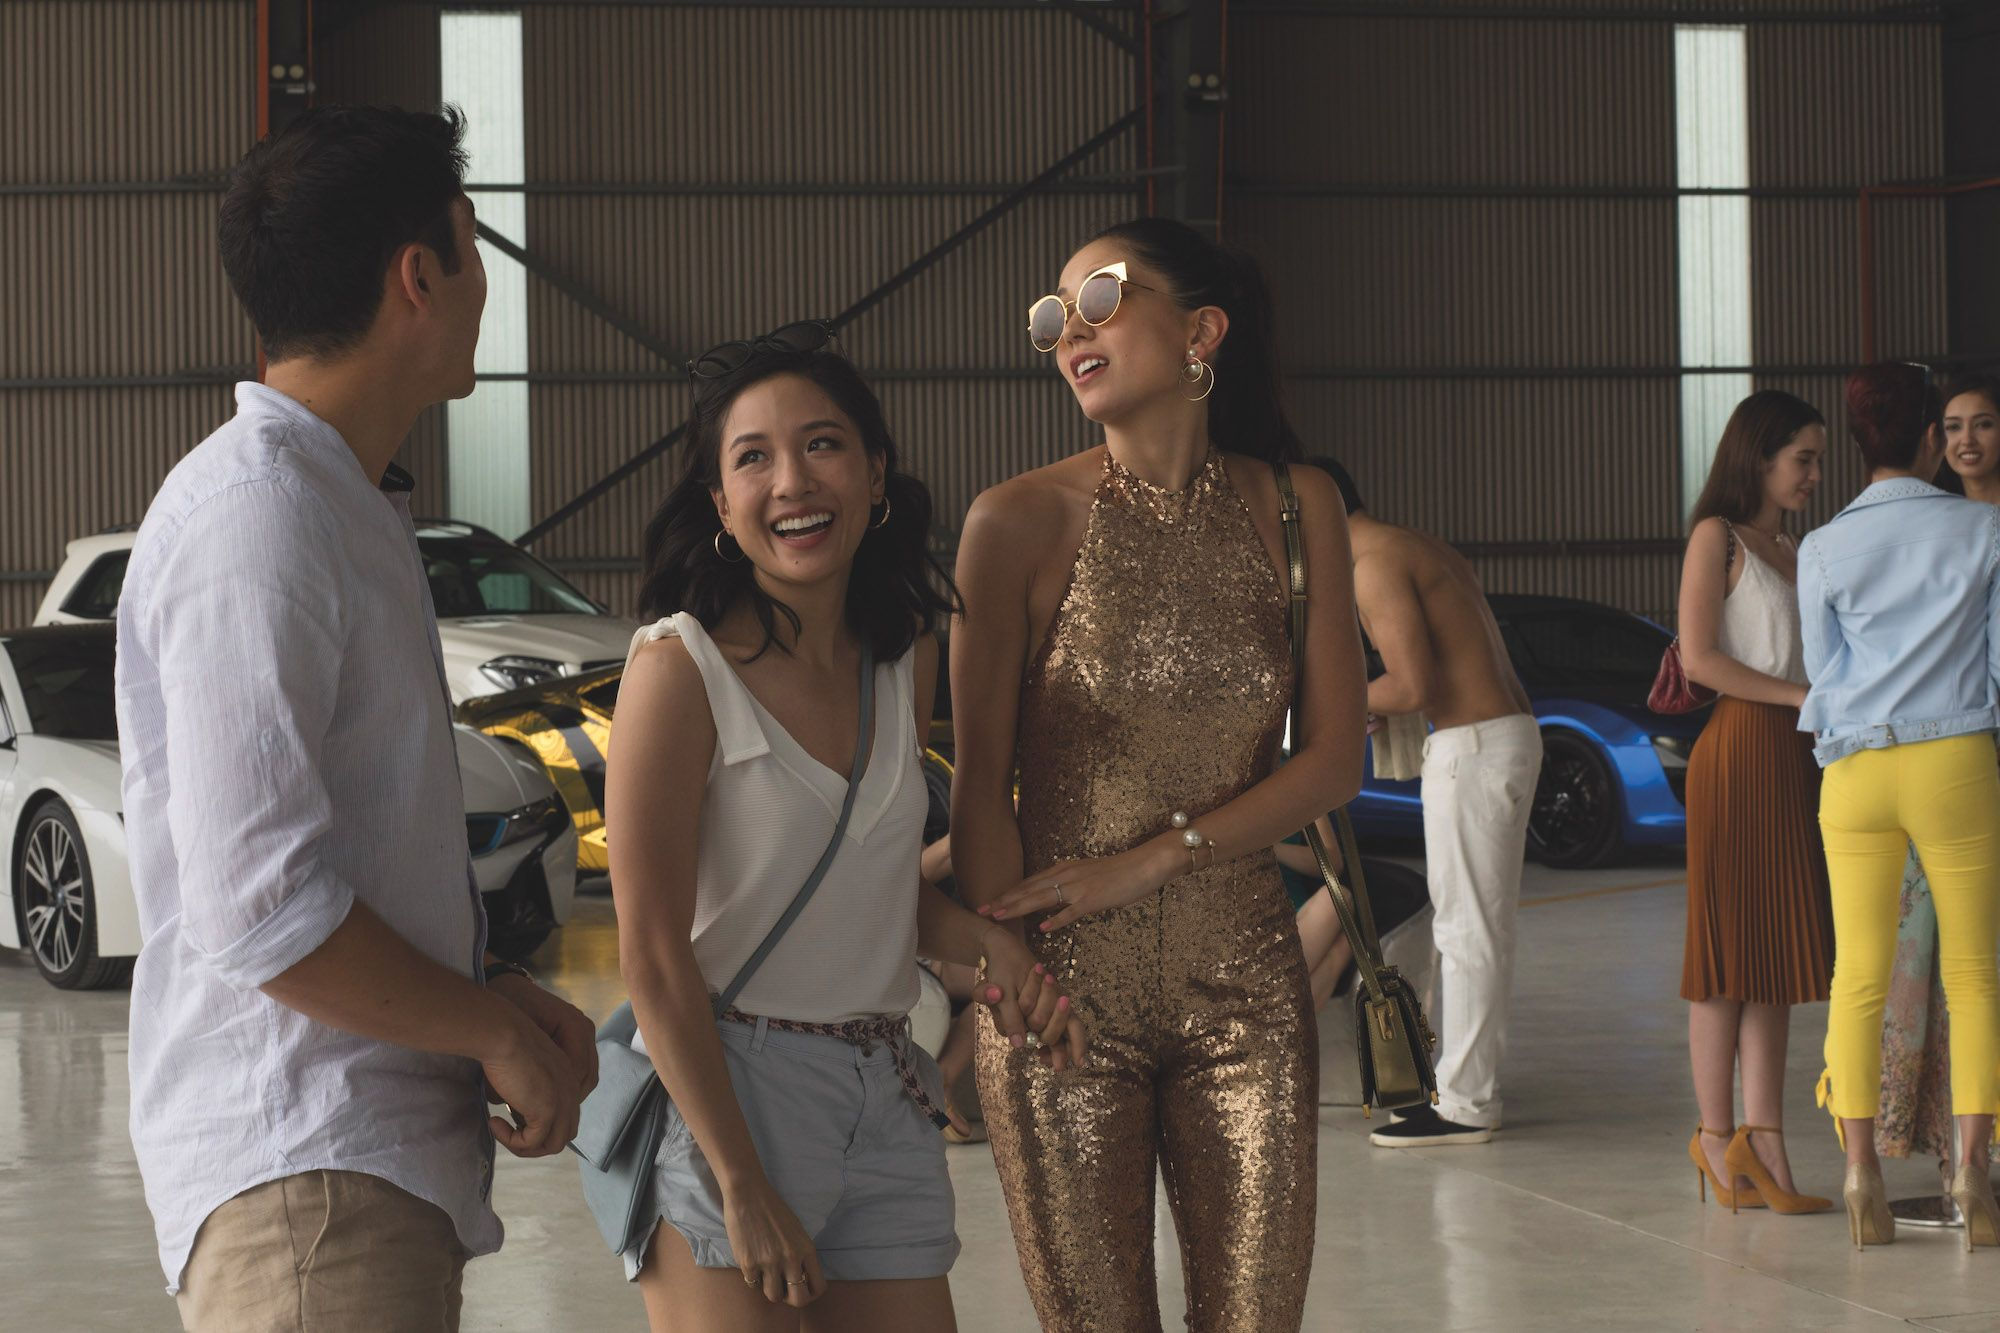 The Show-Stopping Jewellery Necessary For The Crazy Rich Asians Film